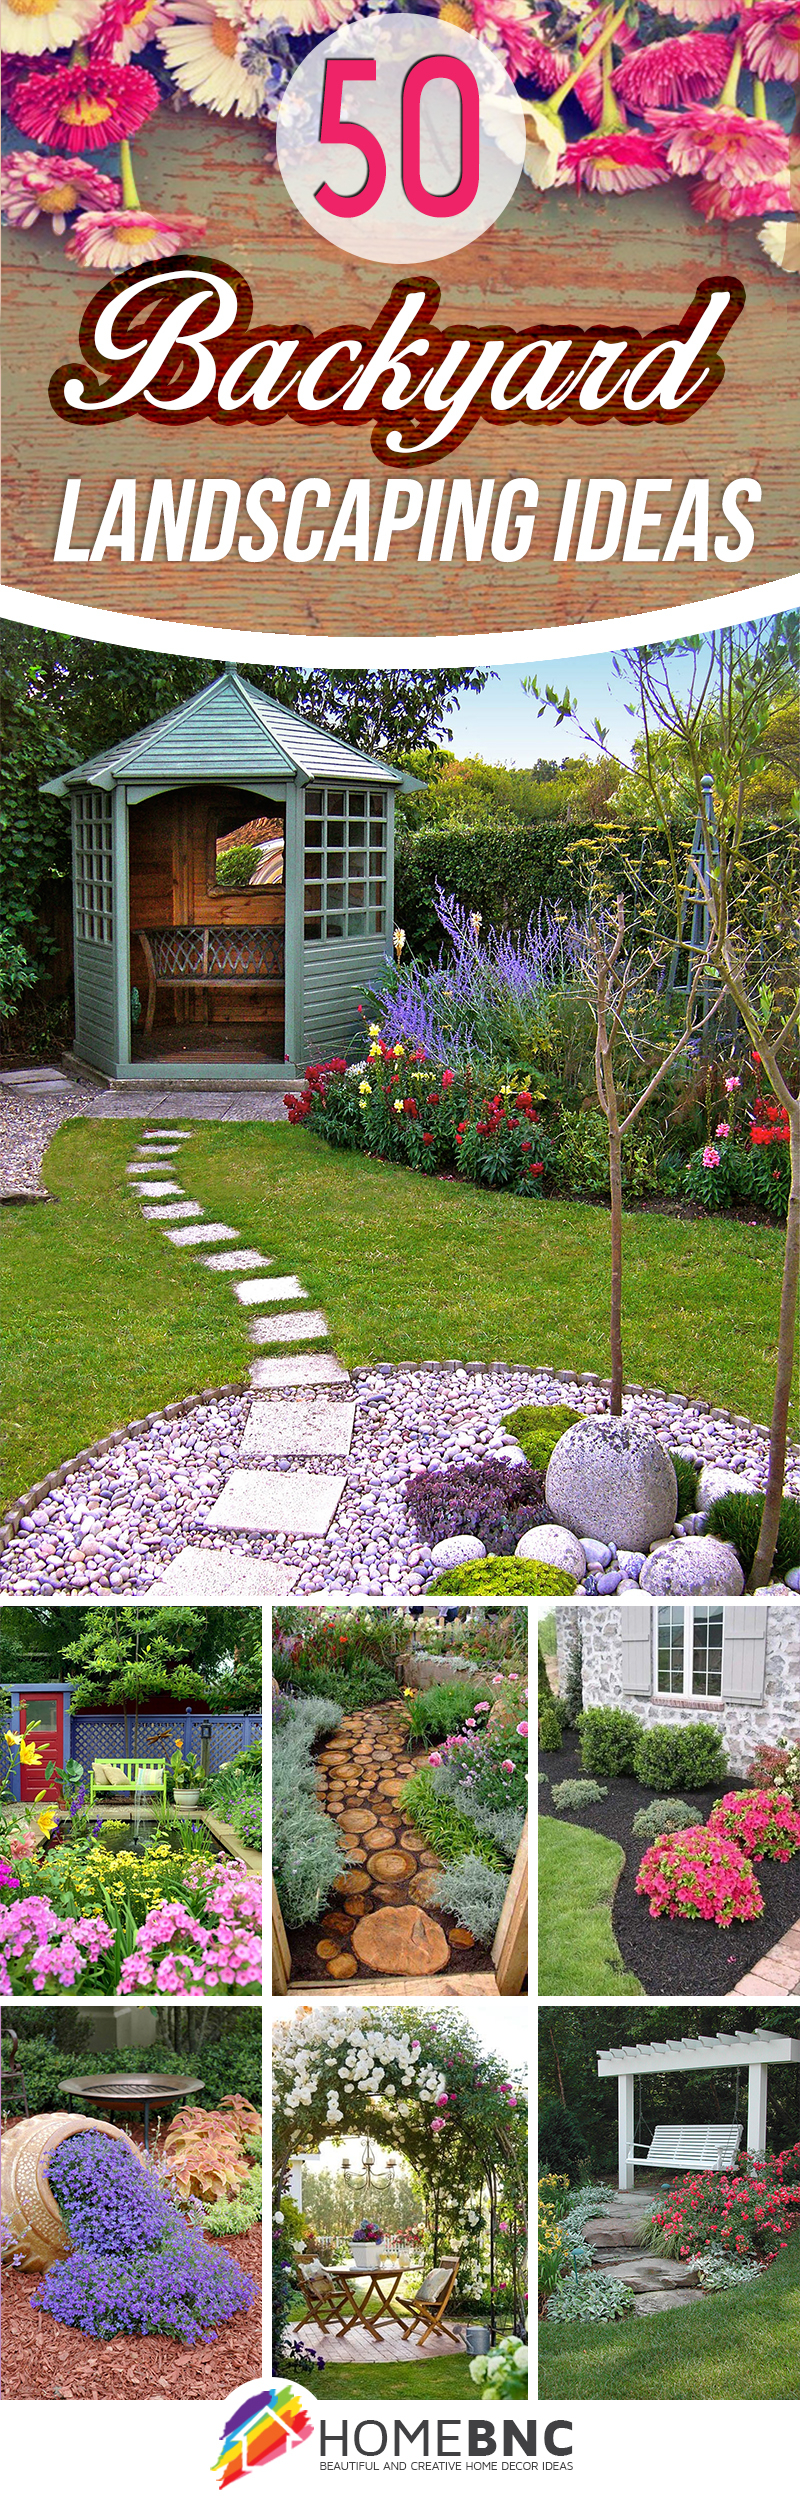 50 Best Backyard Landscaping Ideas And Designs In 2019 inside Best Backyard Landscaping